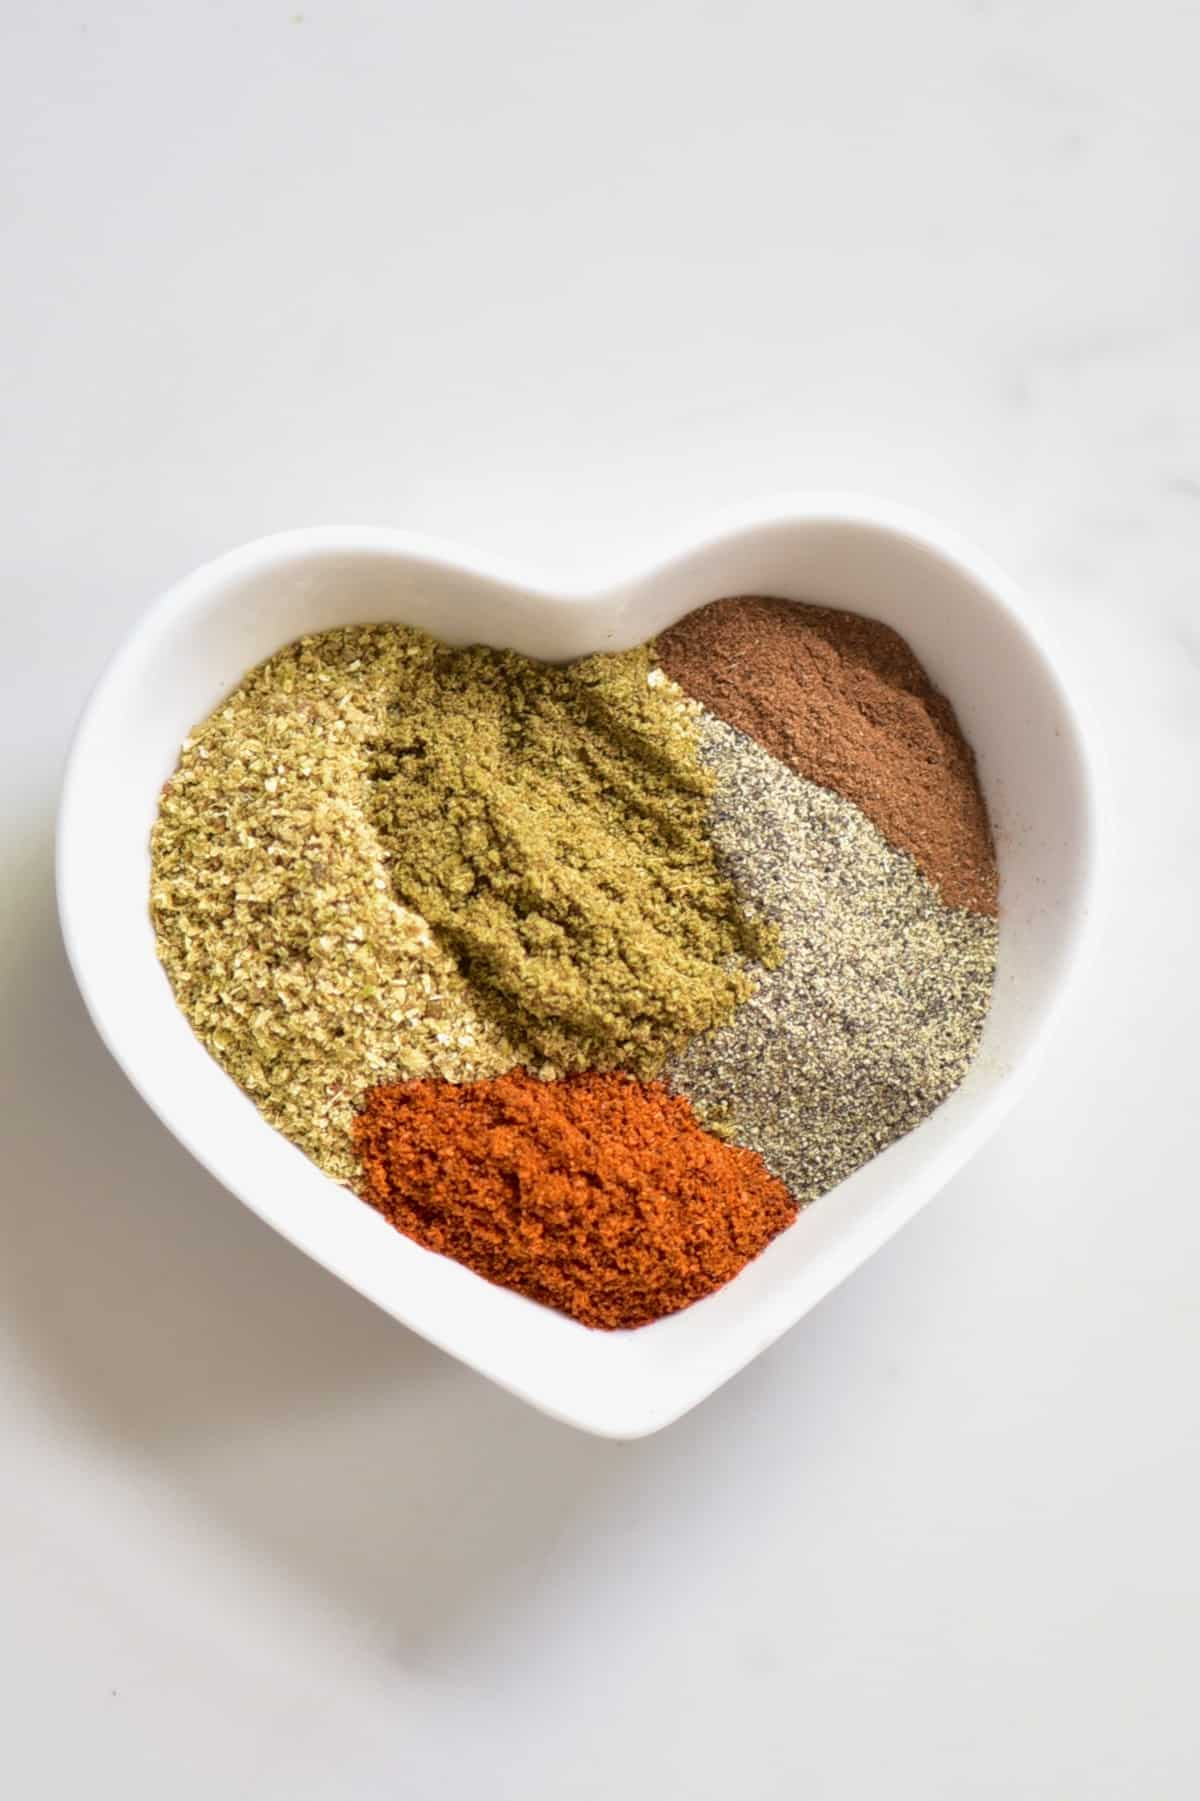 falafel spice mix in a small heart bowl